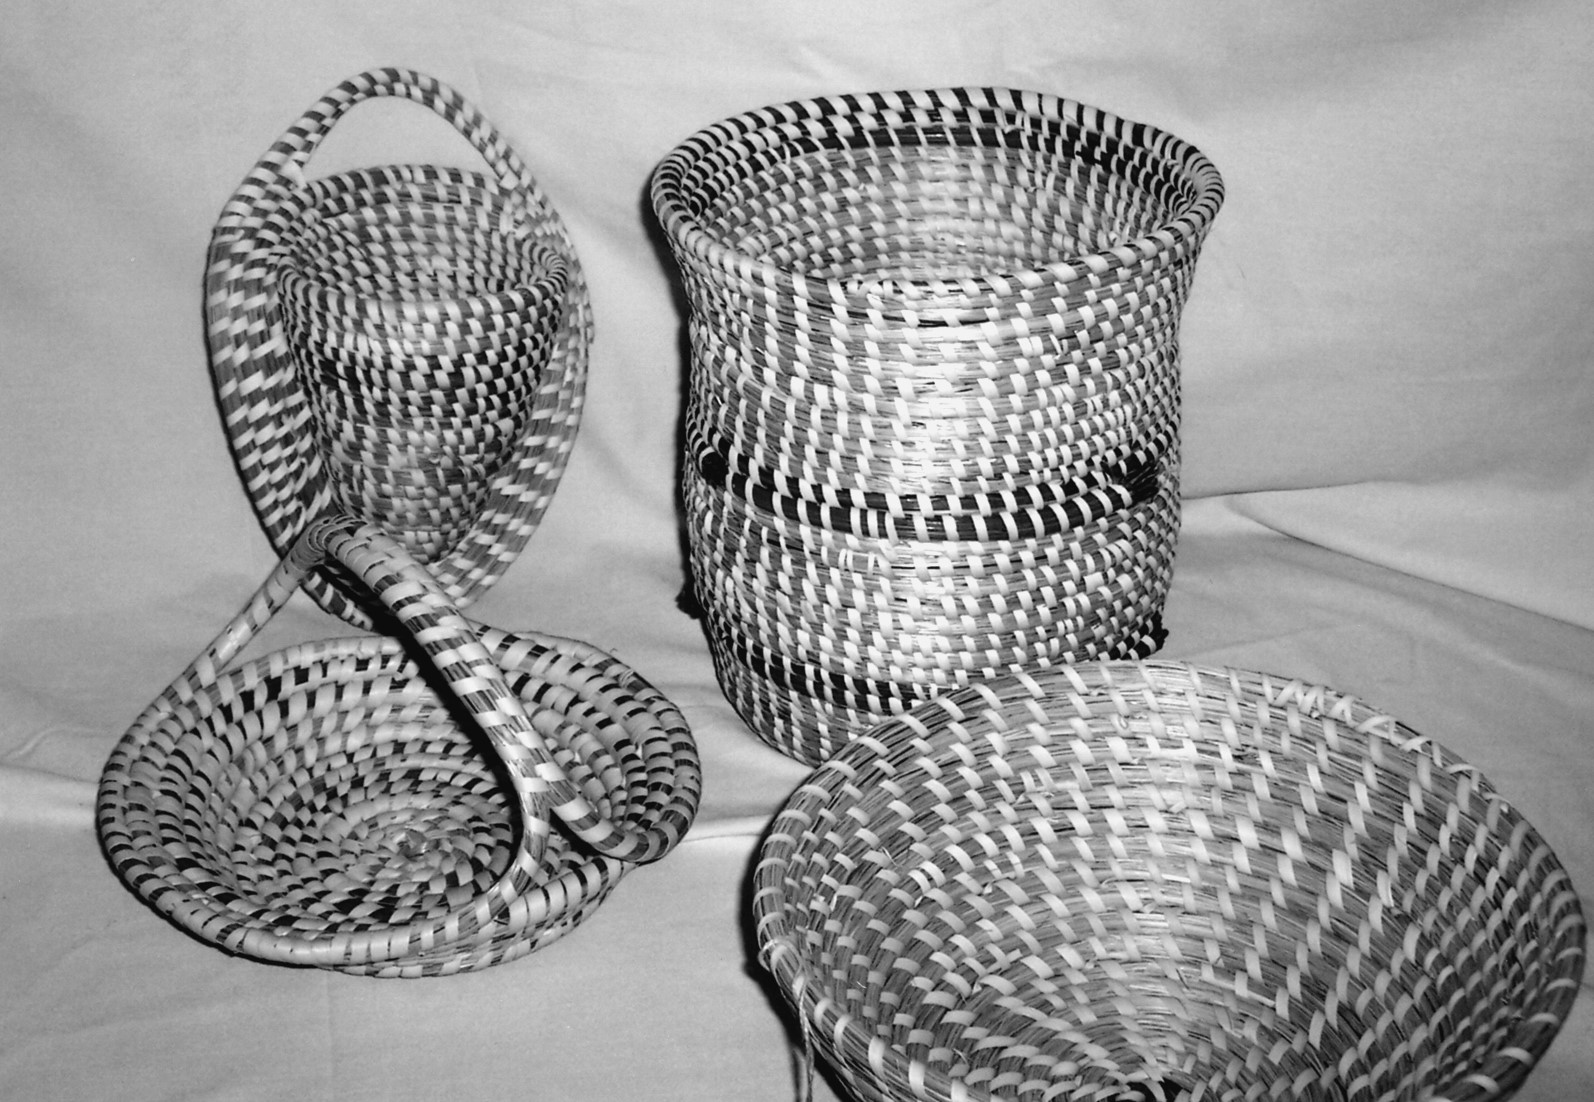 Family Heirloom Sweetgrass Baskets